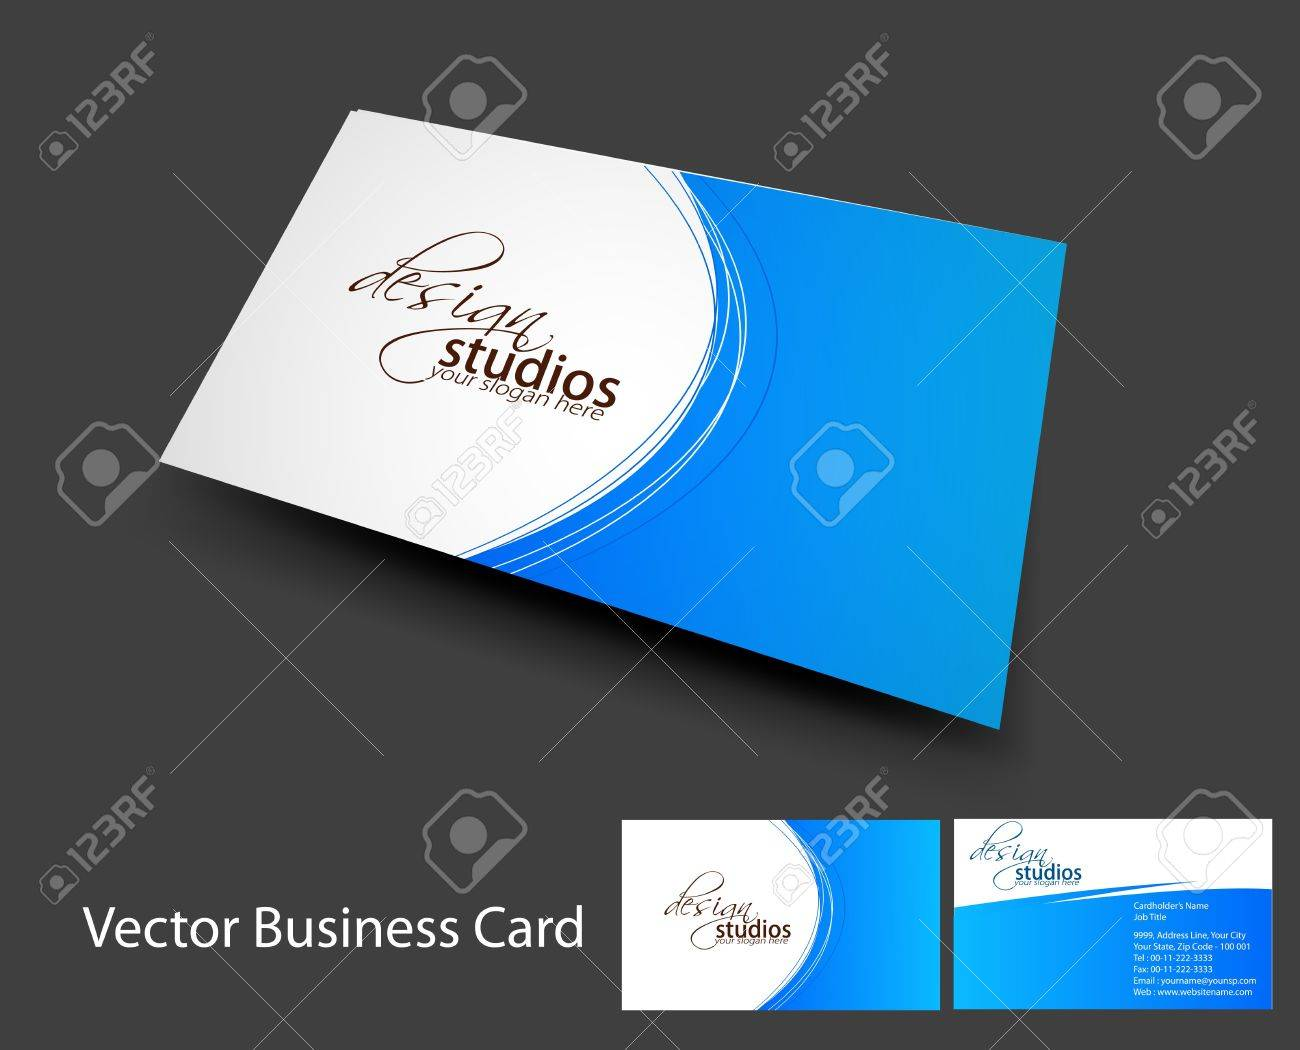 Puzzle Business Cards Choice Image - Free Business Cards